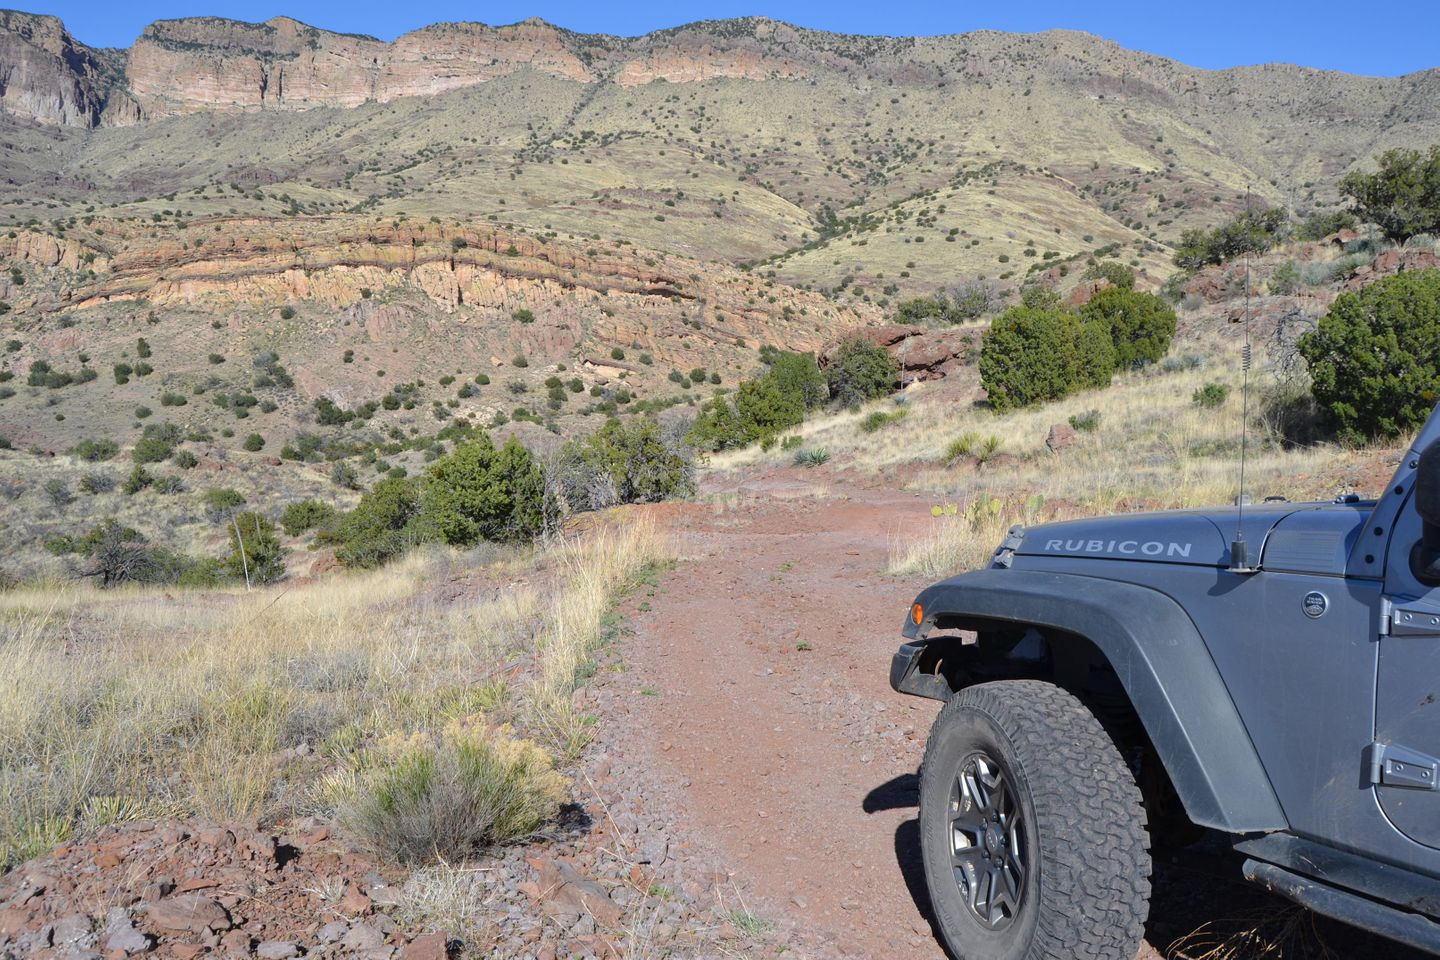 Jackson Cabin/Muleshoe Ranch Road - Waypoint 14: Redfield Canyon Wilderness Boundary